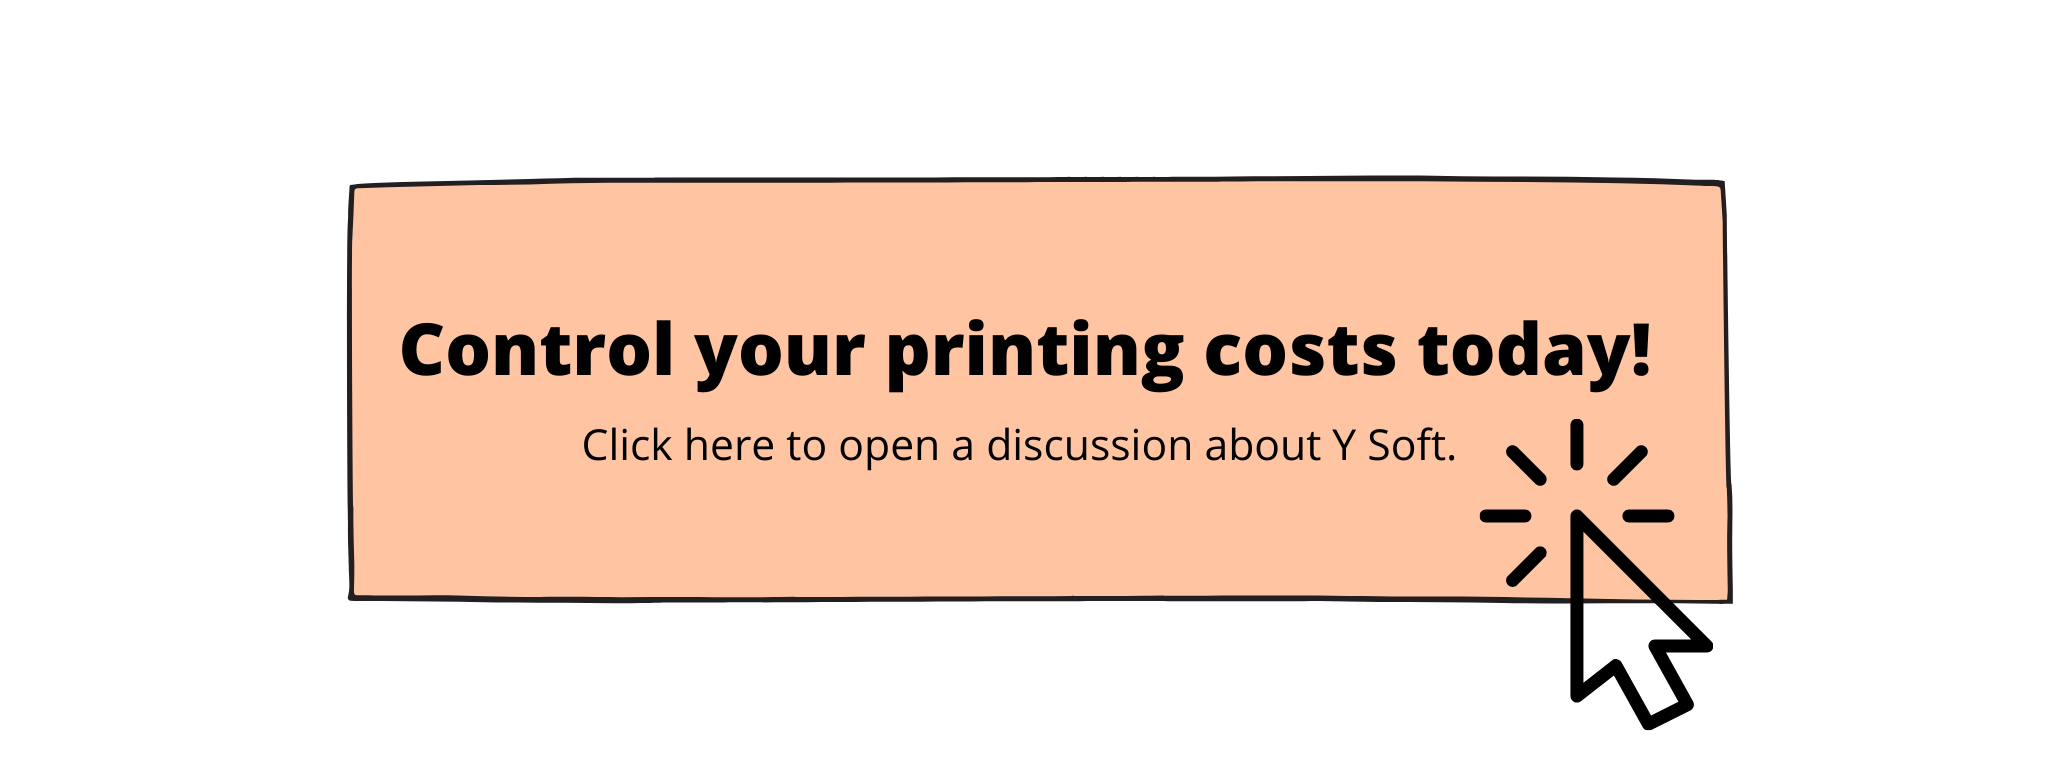 Control your printing costs today button